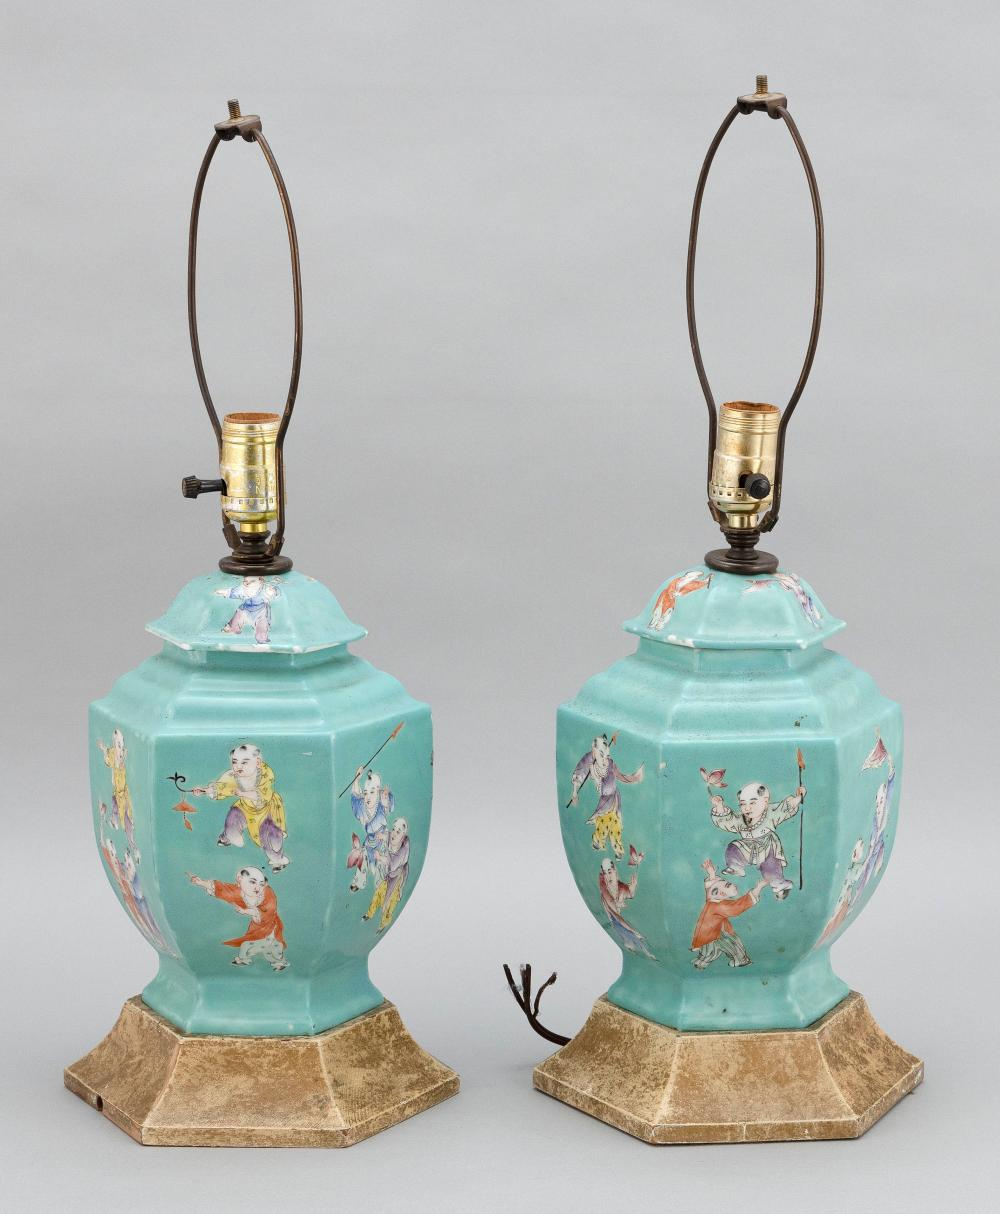 PAIR OF CHINESE FAMILLE ROSE PORCELAIN COVERED JARS 19th Century Heights 10